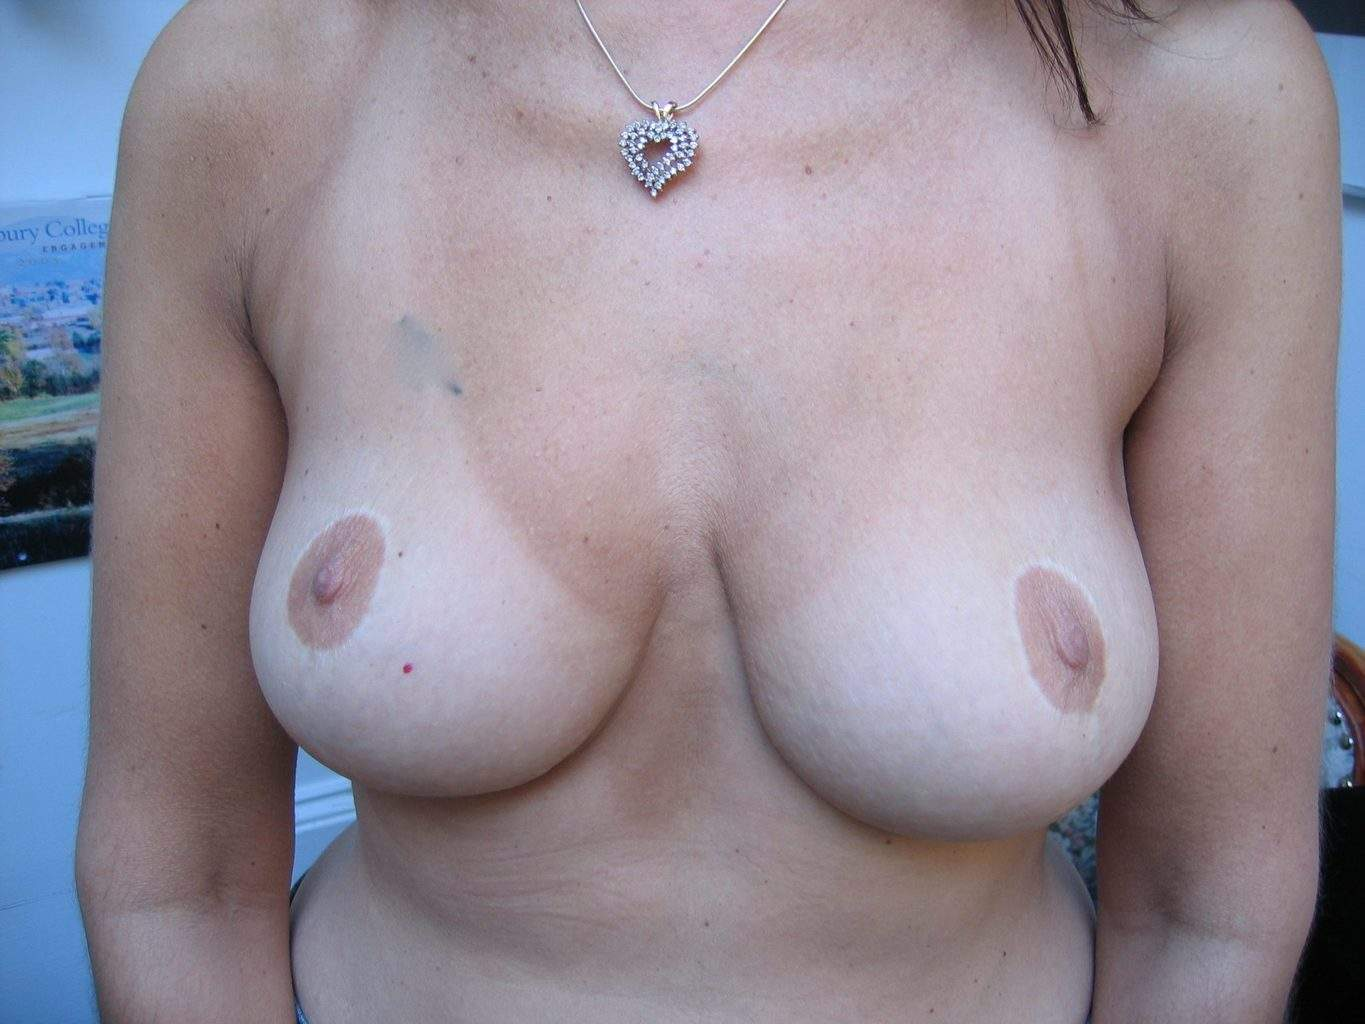 Image of beautiful Breast following Lift Mastopexy Rhode Island Female Plastic Surgeon